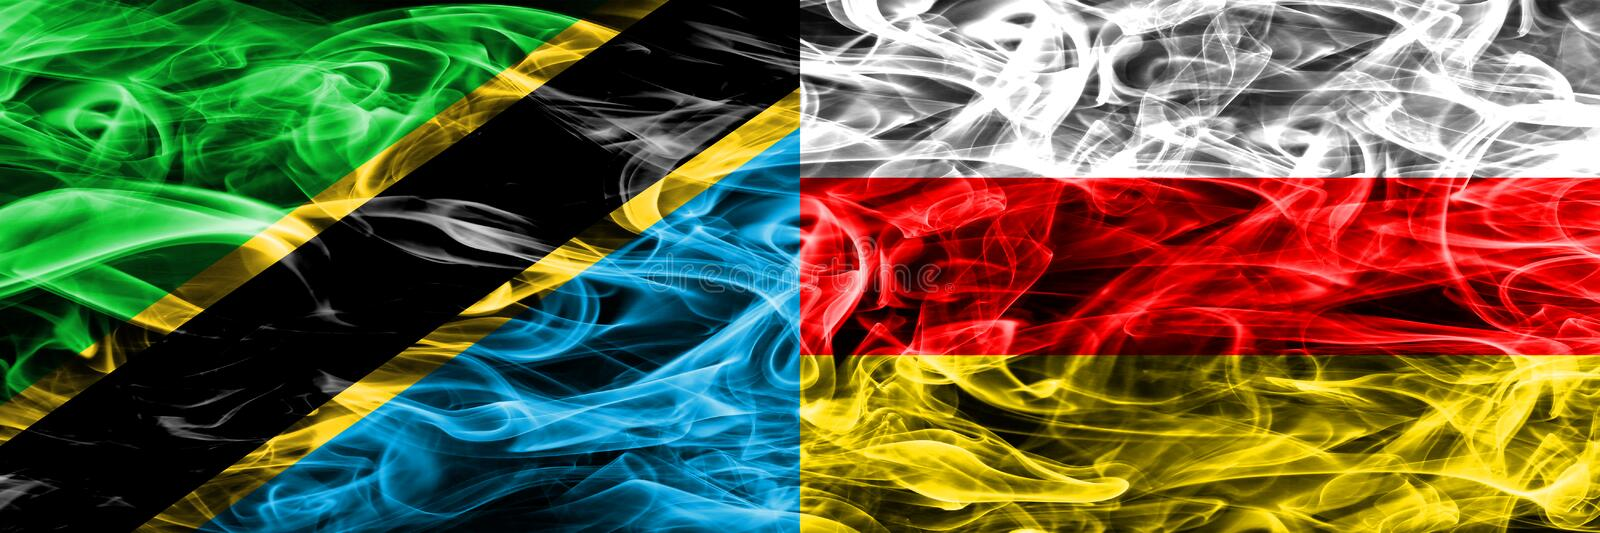 Tanzania vs South Ossetia smoke flags placed side by side. Thick colored silky smoke flags of Tanzanian and South Ossetia.  stock photography